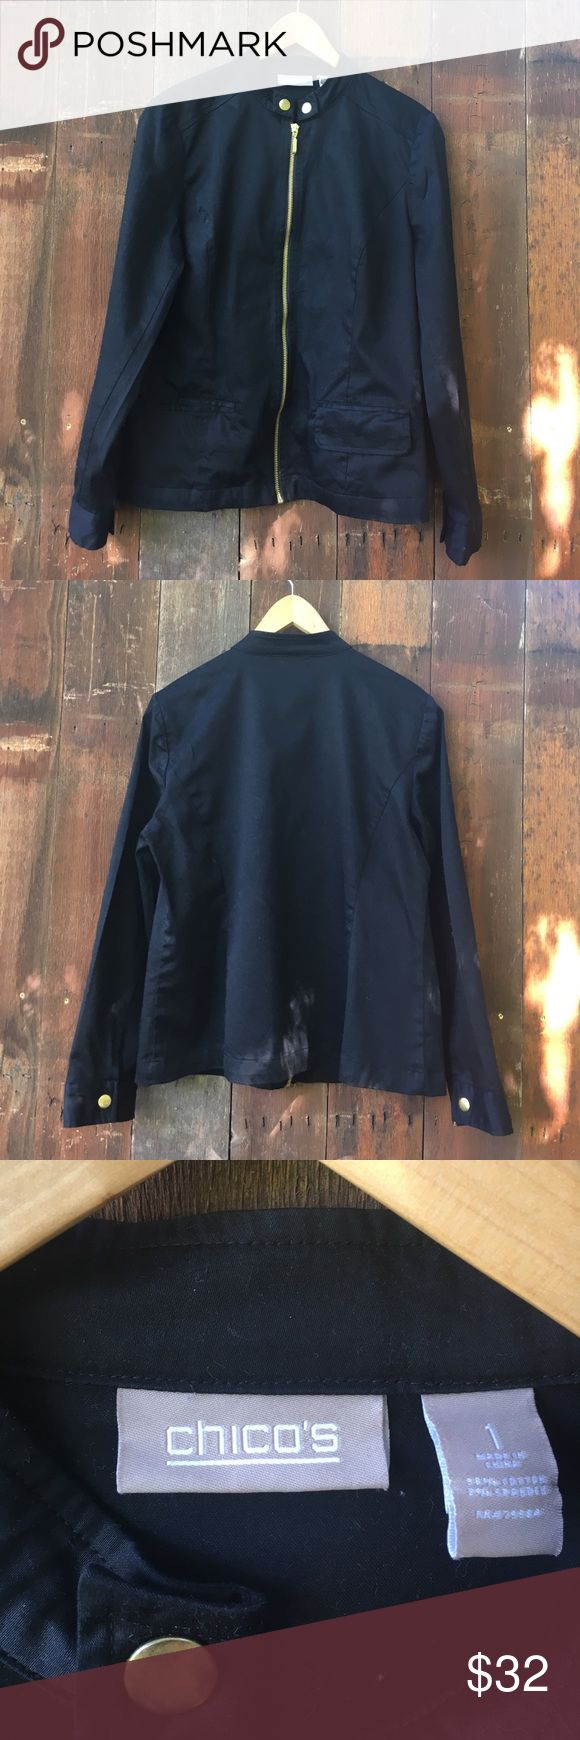 """Chico's Black Zip Up Jacket/Blazer Size 1 Chico's Women's Black Zip Up Blazer/Jacket. Chico's size 1 (conventional size small 8-10). Features a gold zipper, 2 front pockets (one with flap one without), snap cuffs. Measures: Armpit to Armpit 20"""", Length from top of shoulder 23"""", Sleeve Length 23"""". Jacket is in excellent condition. Chico's Jackets & Coats Blazers"""